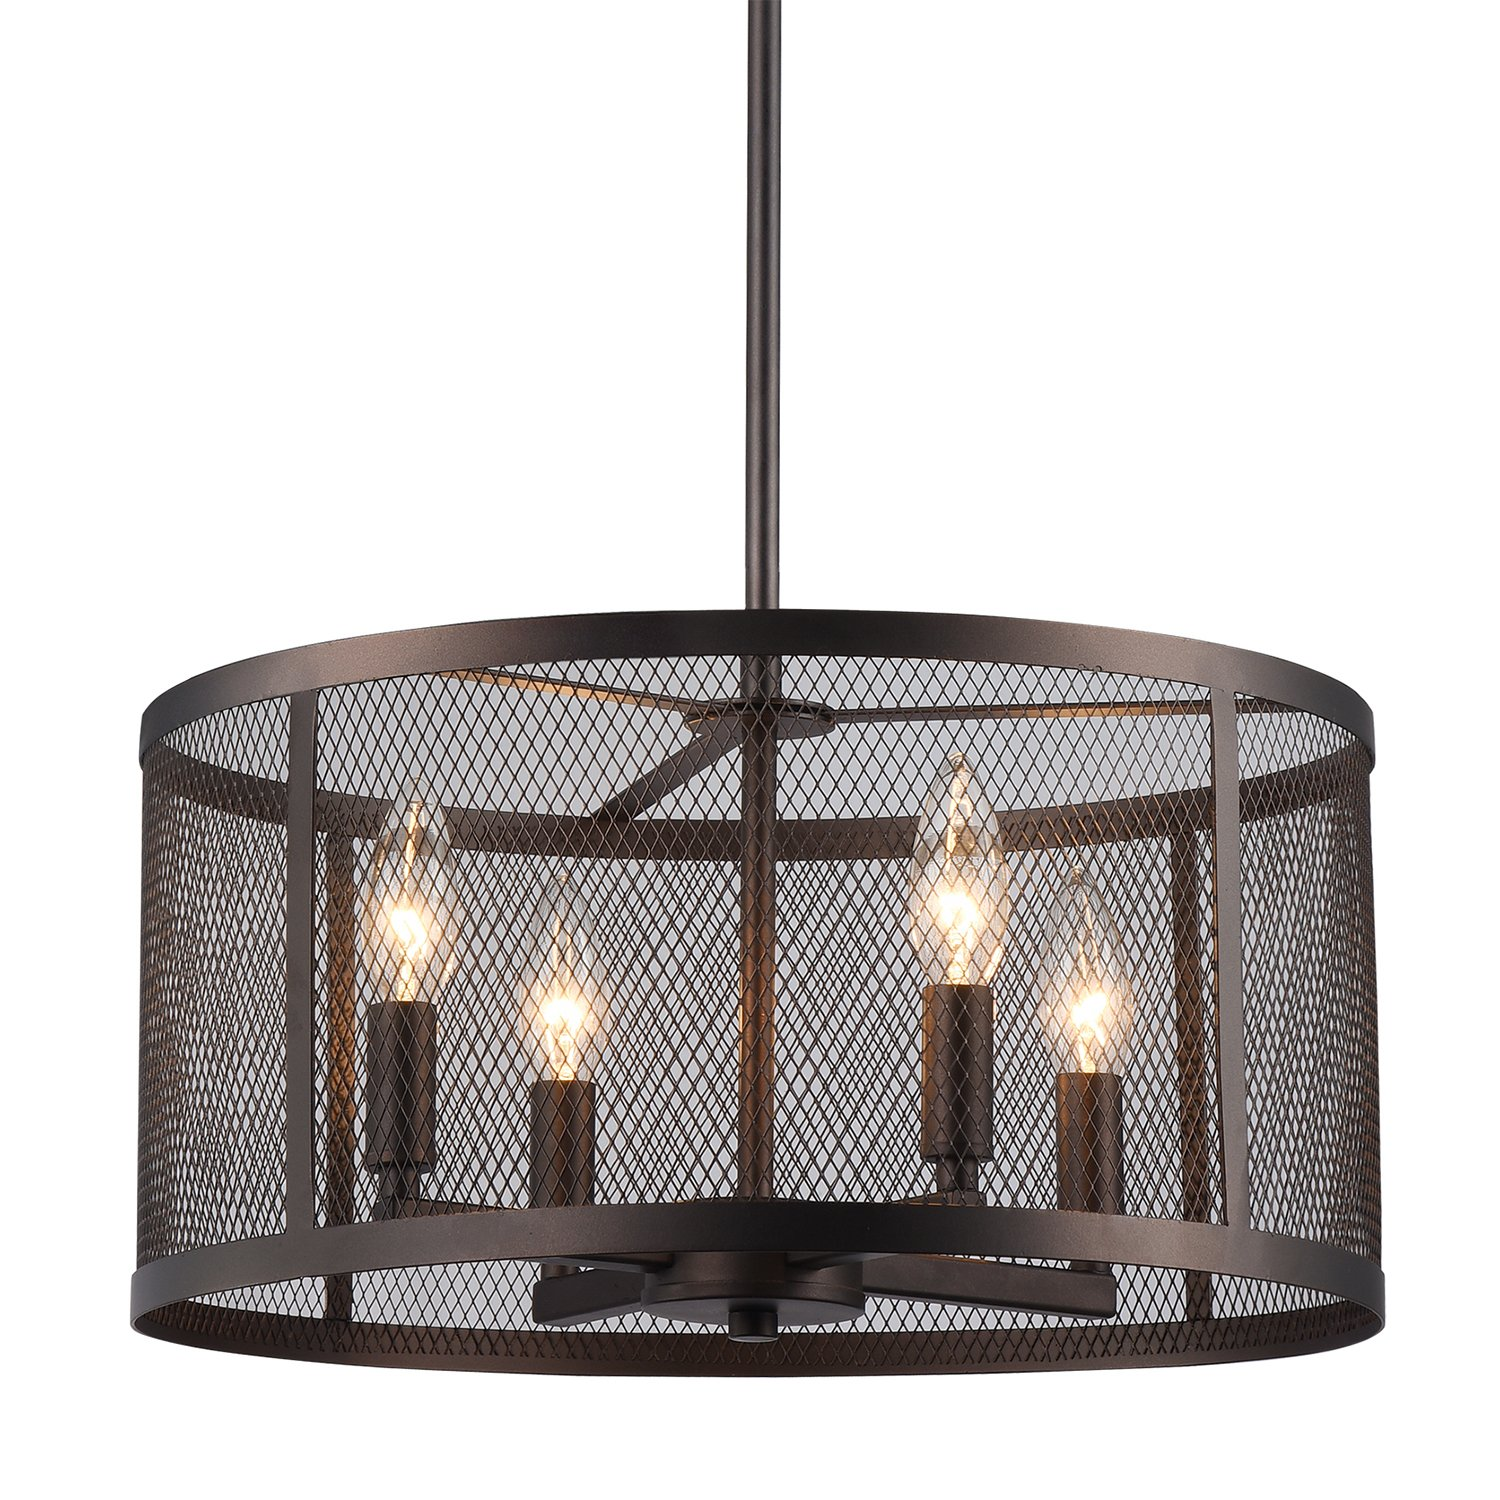 Aludra 4-Light Round Metal Mesh Shade Pendant Chandelier Oil Rubbed ...